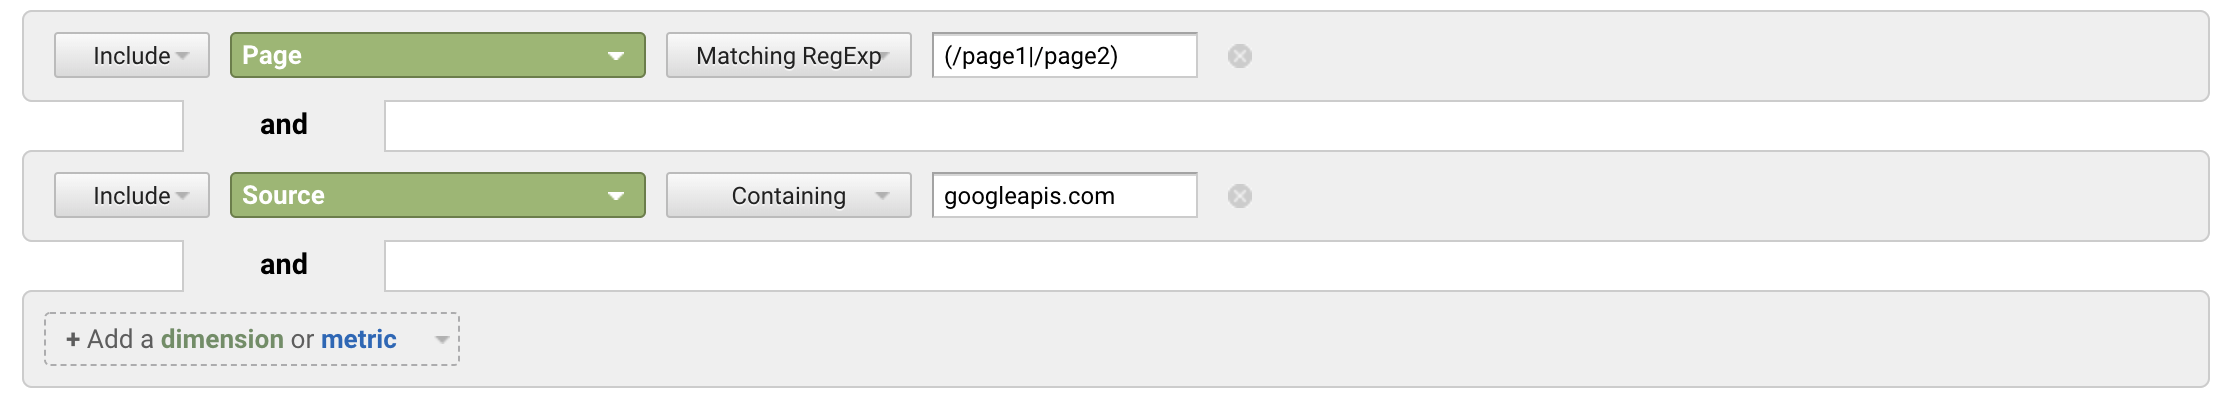 Filtering all pages that have received traffic from Discover in Google Analytics